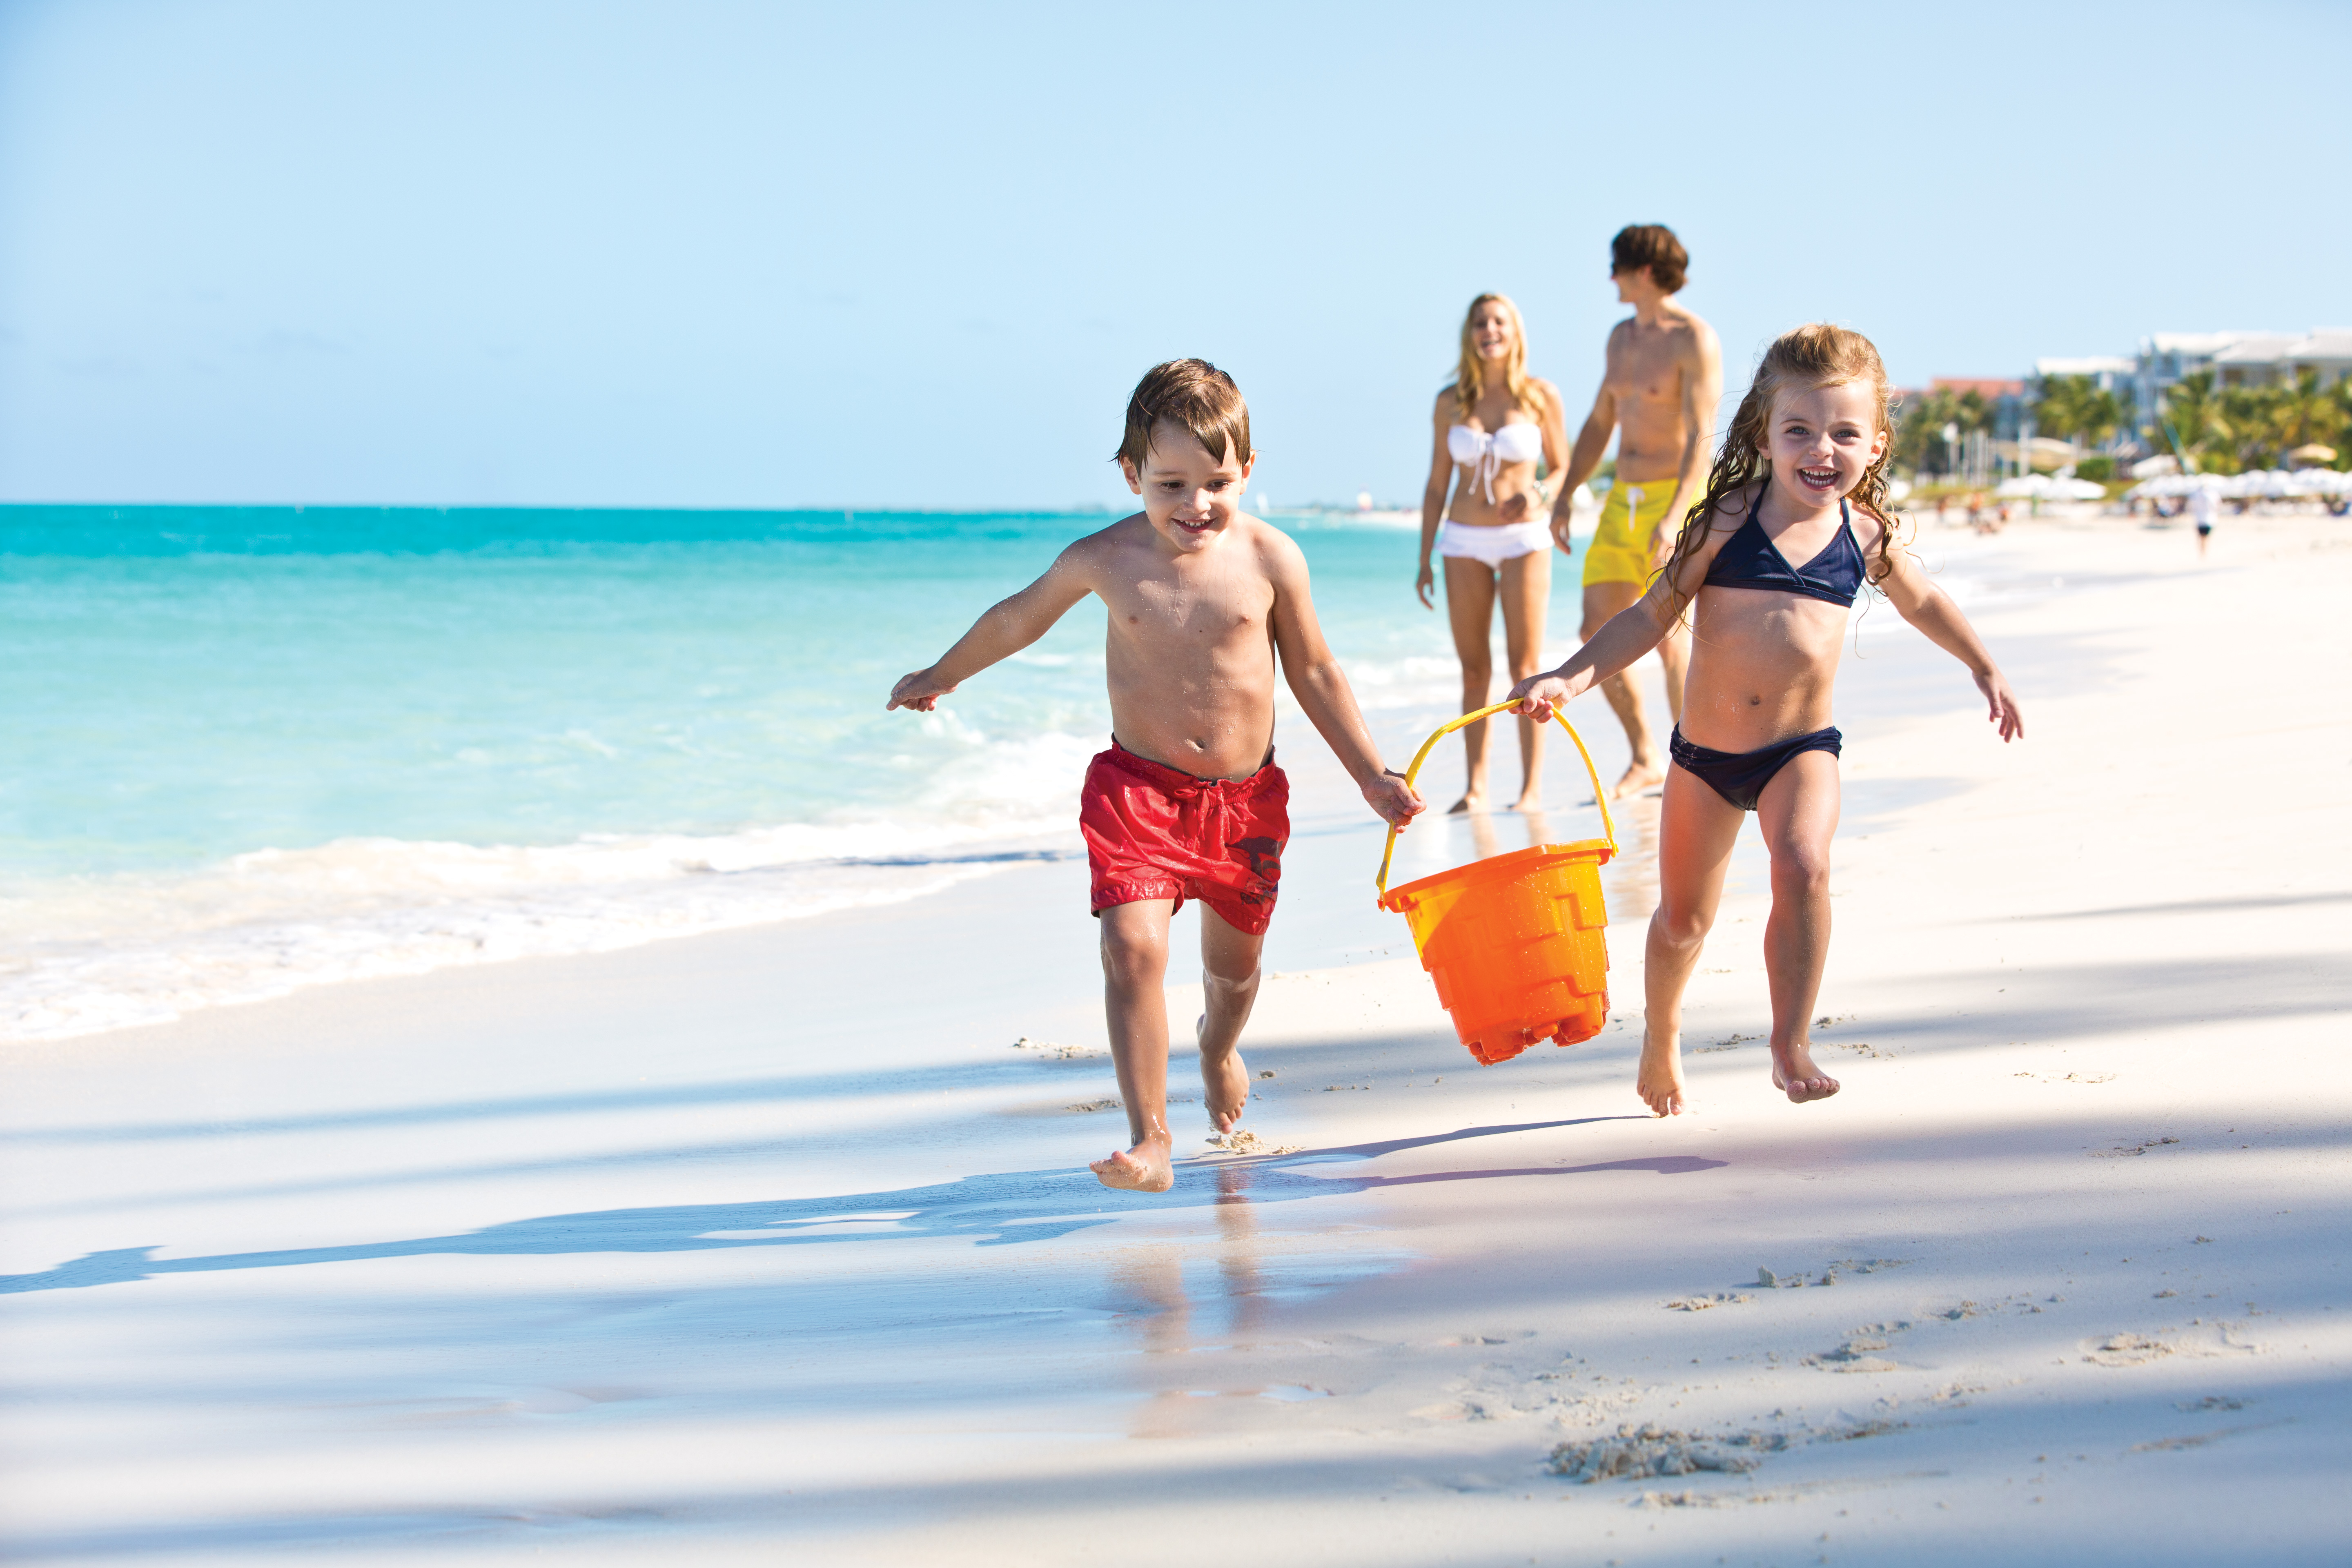 Beaches® Resorts: A Fun-Filled Family Vacation Where You Can Do It All!